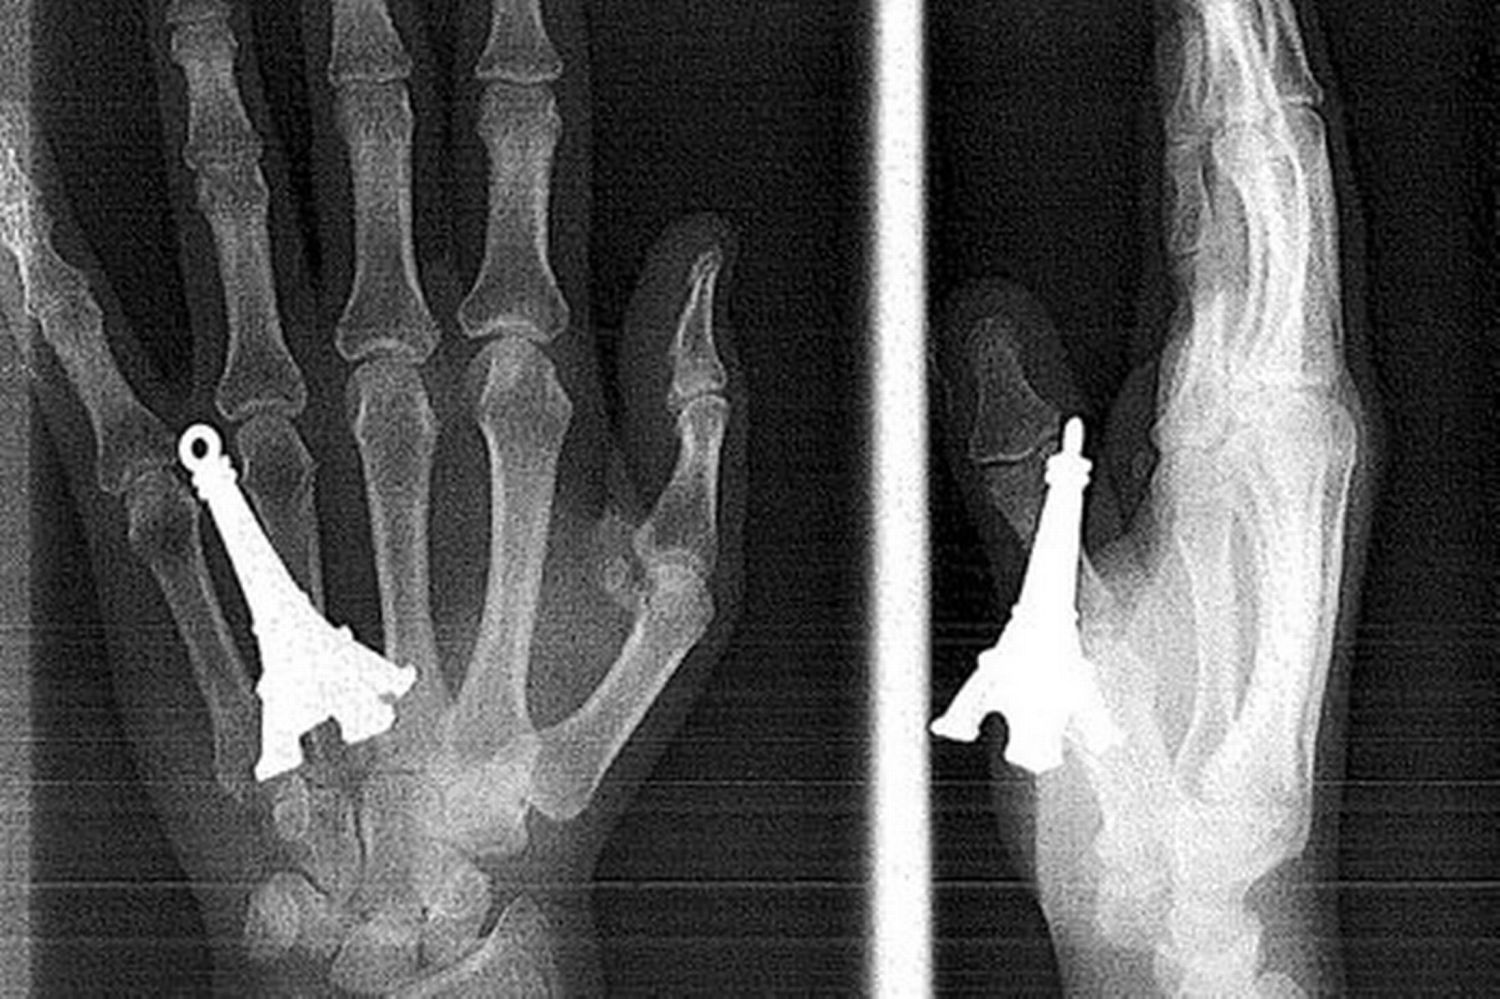 15 Strange And Funny X-ray Images That Will Make You Squirm